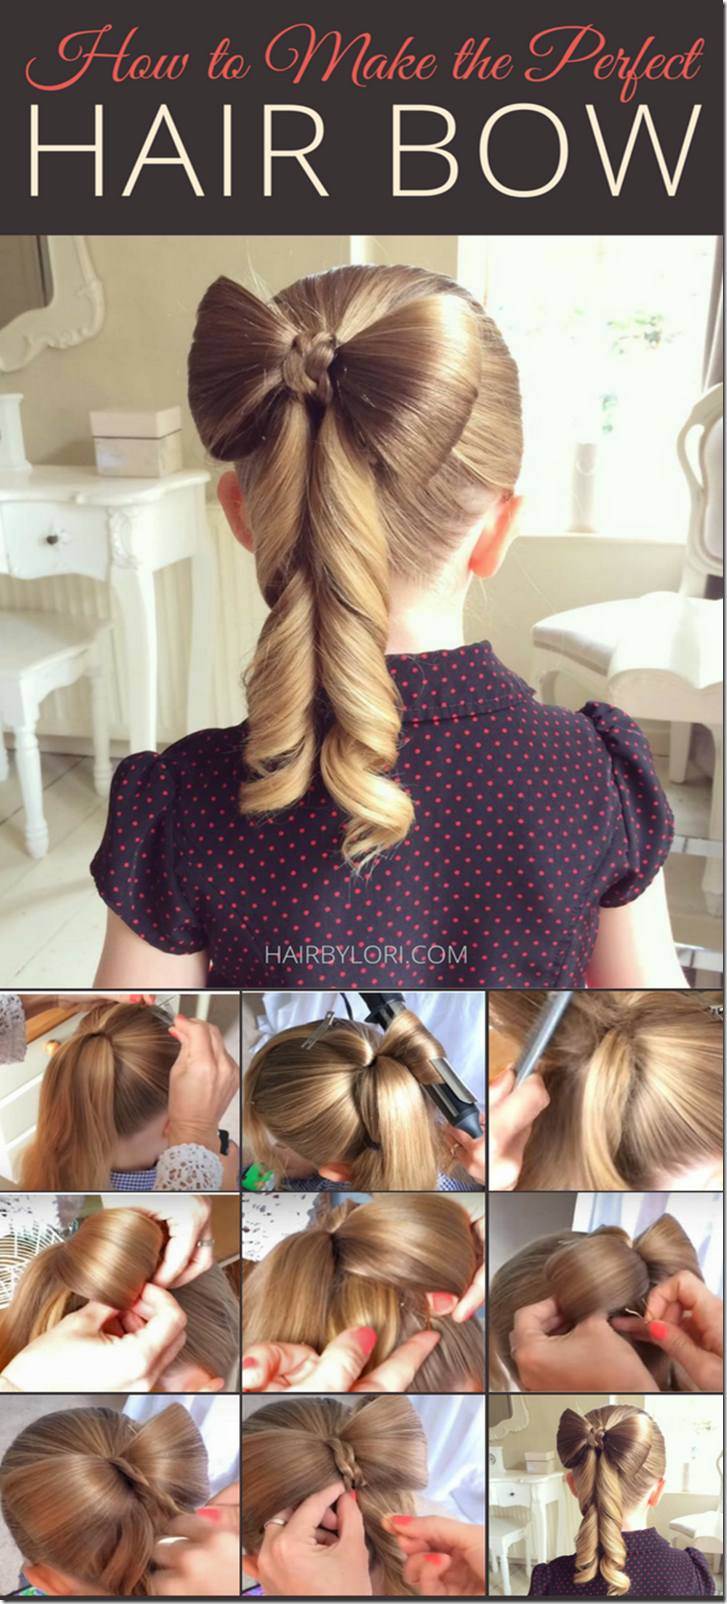 Step By Step How To Make The Perfect Hair Bow Hairstyle For Girls Girls School Hairstyles Hair Styles Bow Hairstyle